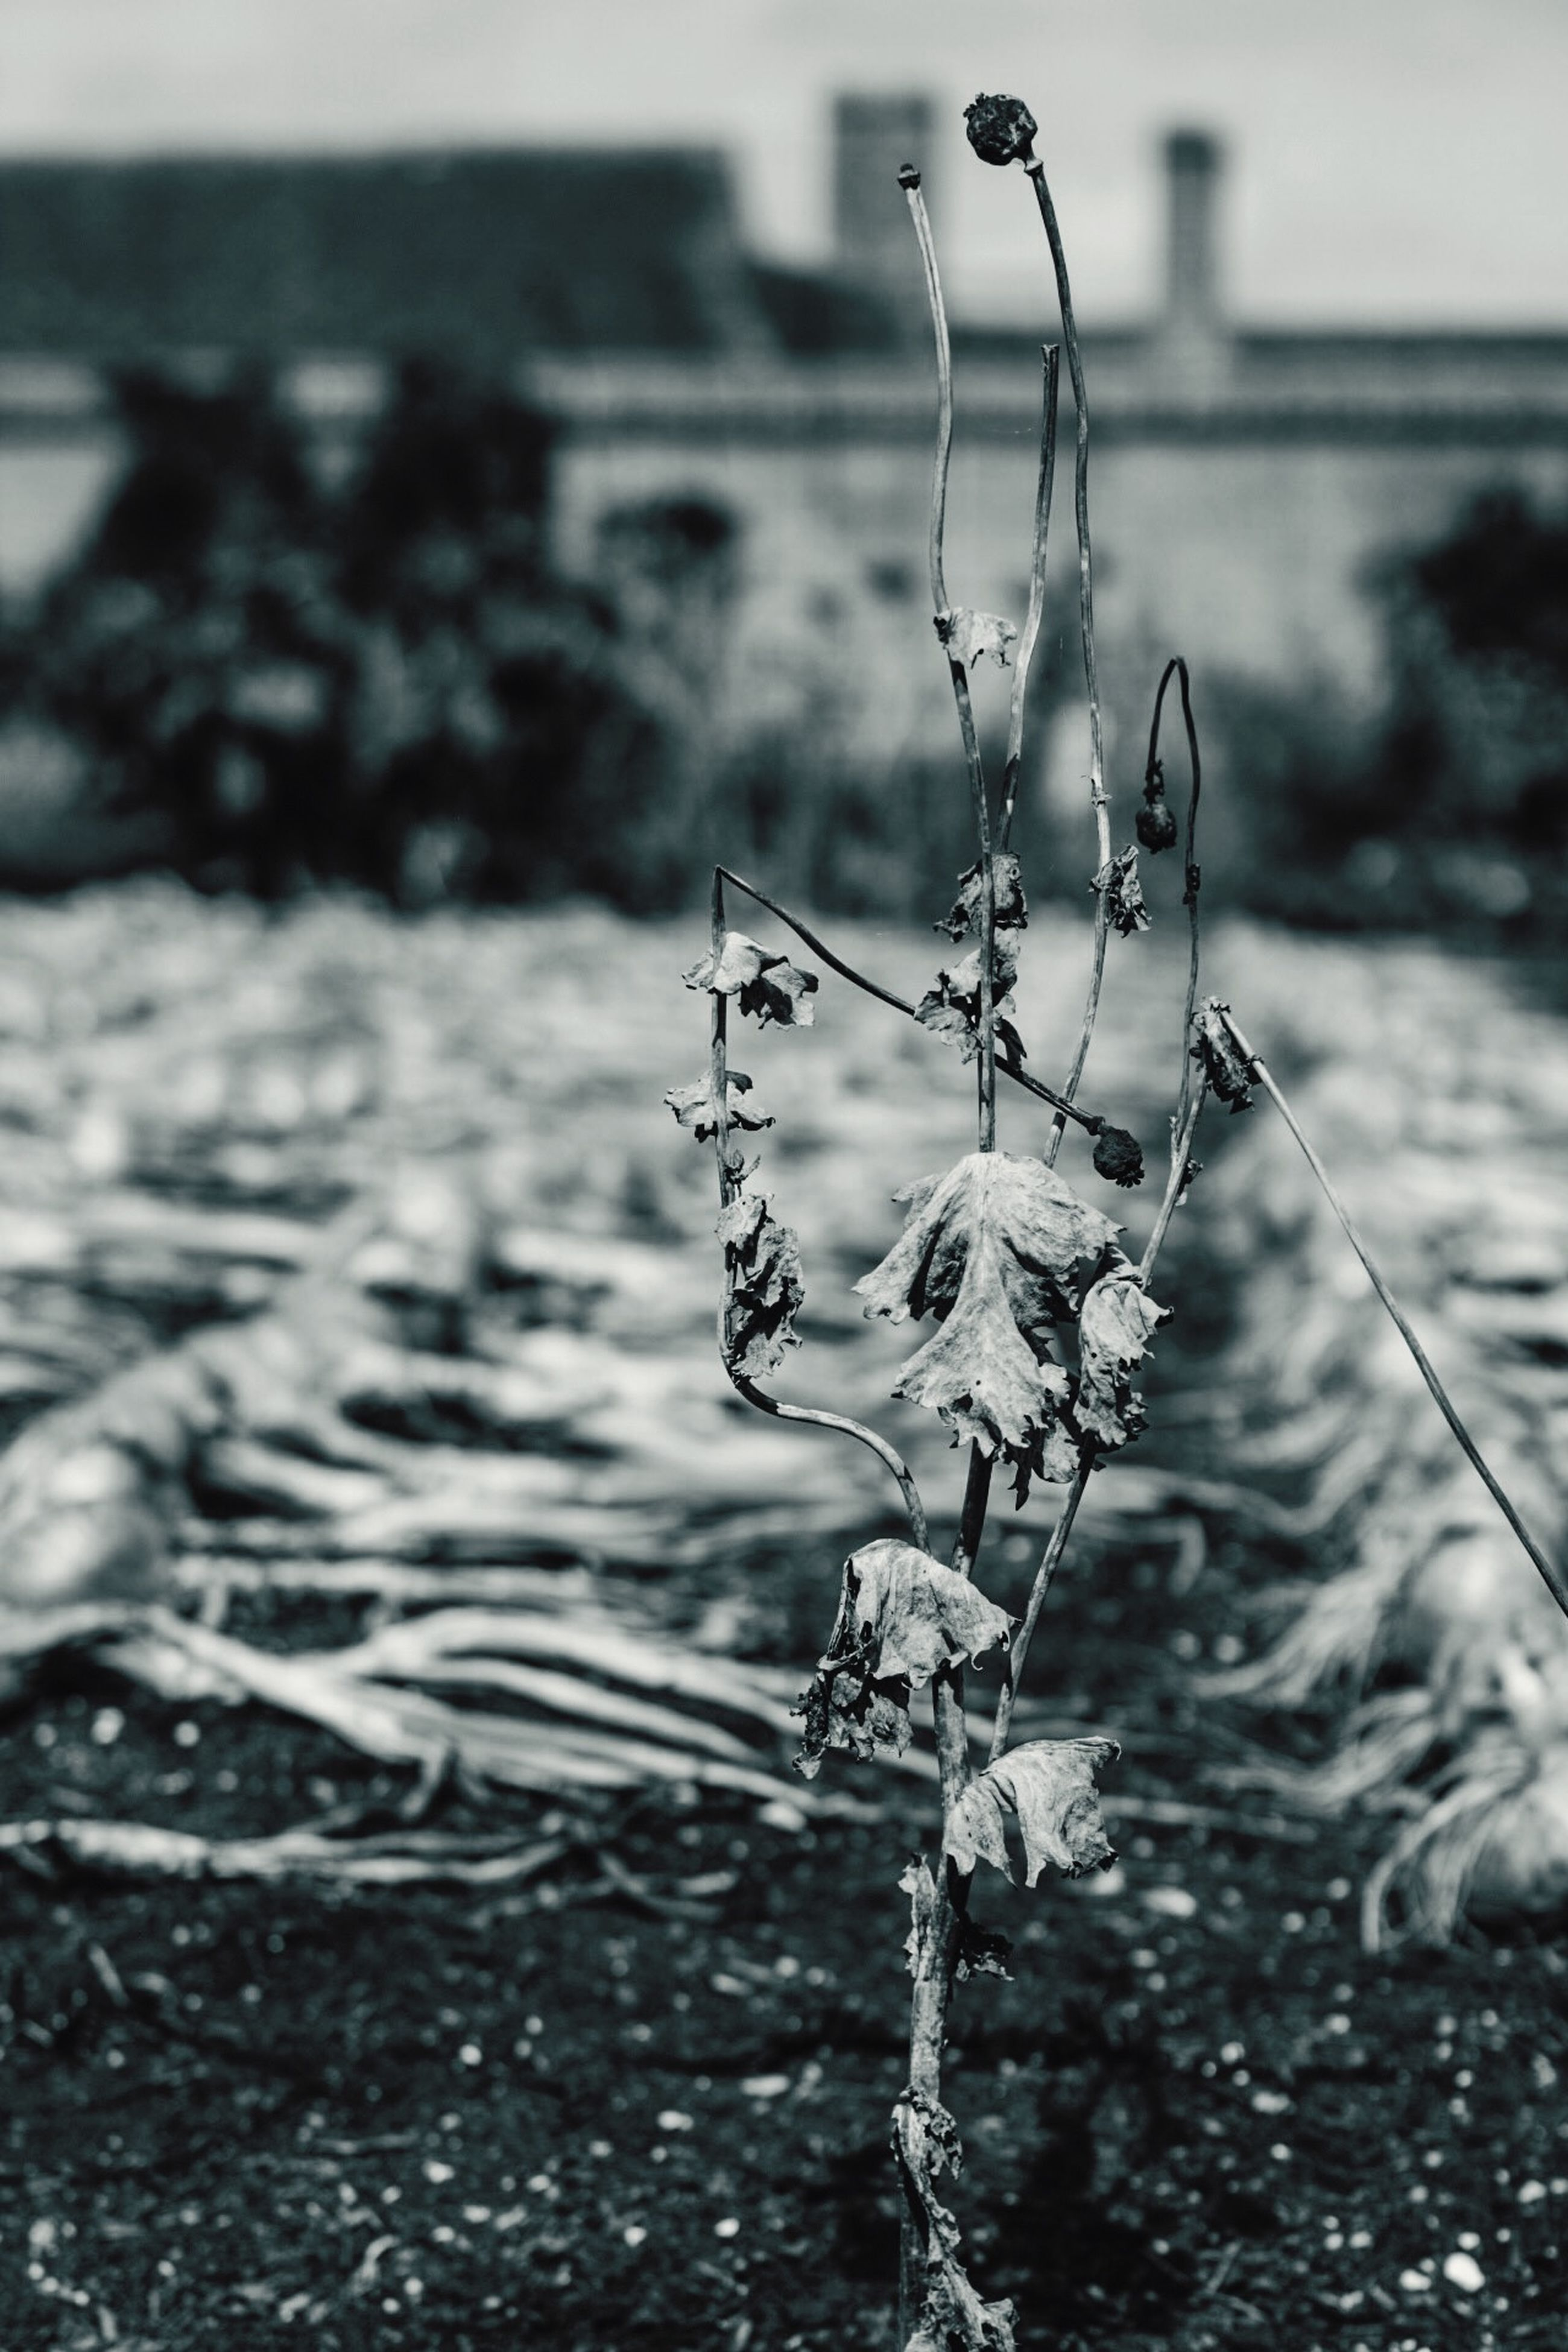 water, focus on foreground, flower, close-up, plant, nature, selective focus, stem, fragility, day, freshness, growth, outdoors, no people, sunlight, reflection, twig, beauty in nature, built structure, growing